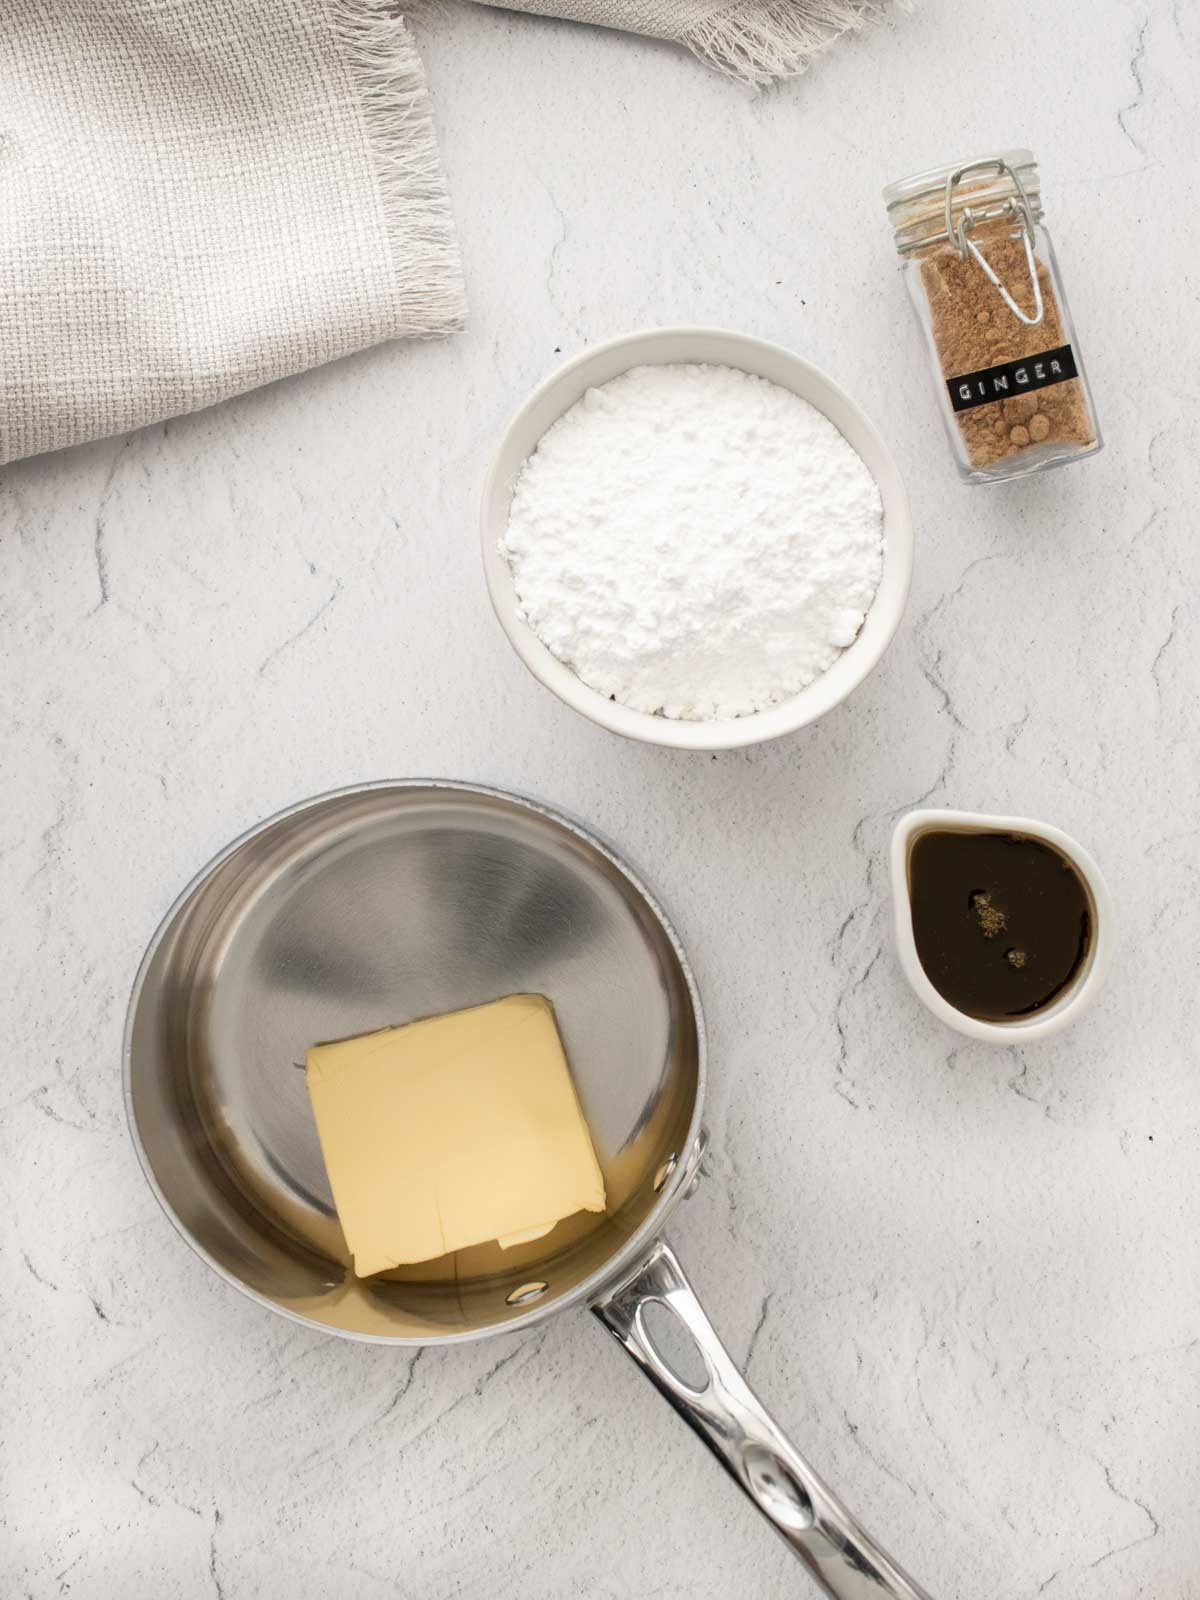 ginger crunch icing ingredients